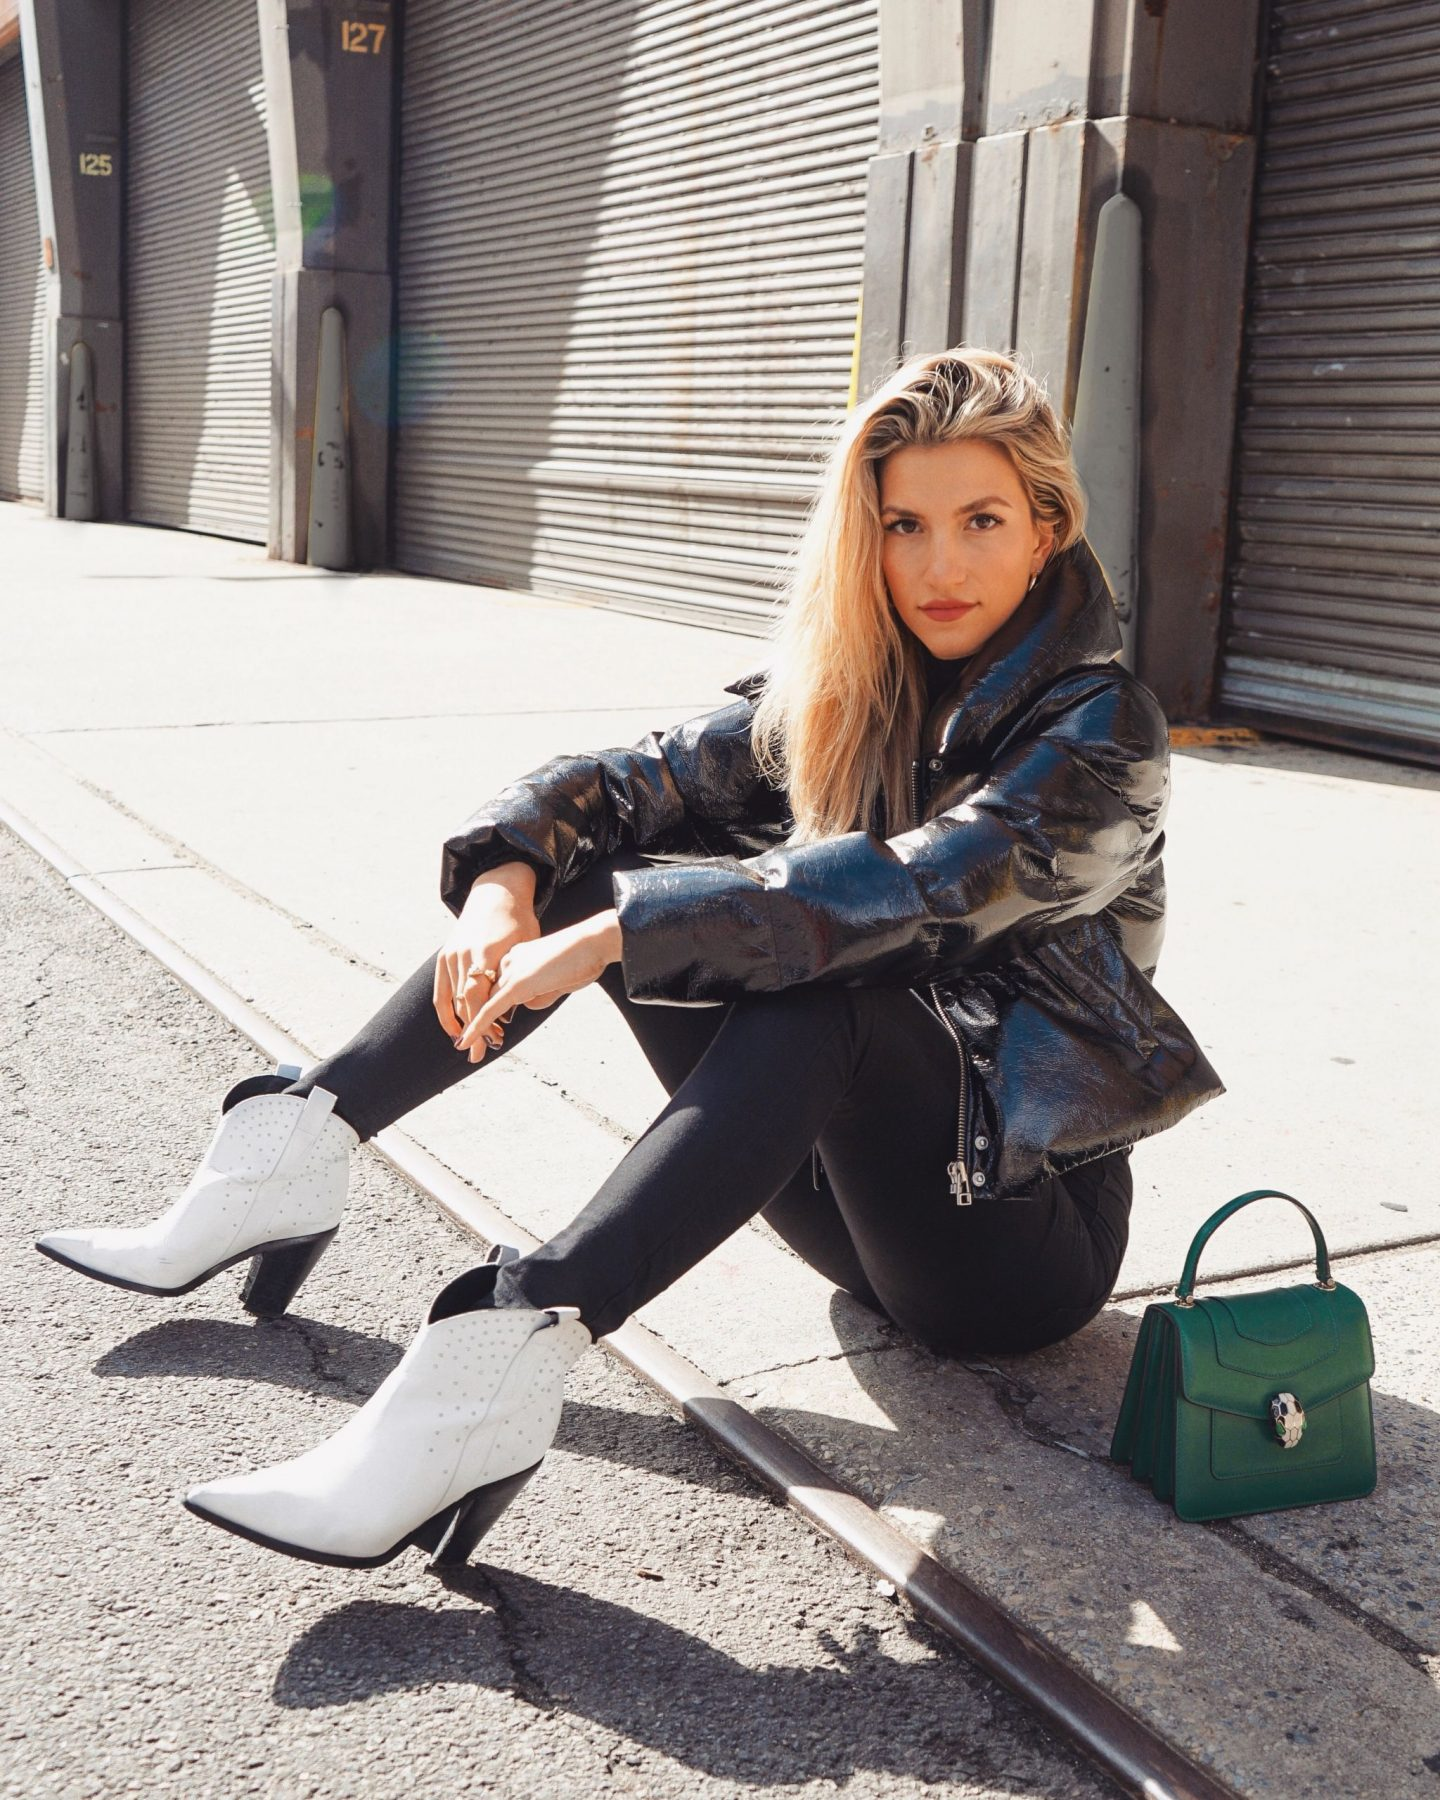 Cassandra DiMicco, Cass DiMicco, Dressed For Dreams, NYC, New York City, New York, Street Style NYC, Street Style 2018, NYC Street Style, NYC Outfit Inspo Street Style Outfits, 2018 Trends, Summer Style, Summer Outfit Inspo, NYC Fashion Blogger, NYC Fashion Blogger, NYC to do list, NYC to do, NYC bucket list, NYC Instagram Spots, 2018 trends, LPA puffer jacket, LPA, revolve around the world, revolve around the world NYC, NYC influencer, sigerson Morrison Kalie boots, sigerson Morrison boots, sigerson Morrison, white studded cowboy boots, Bulgari serpent tote